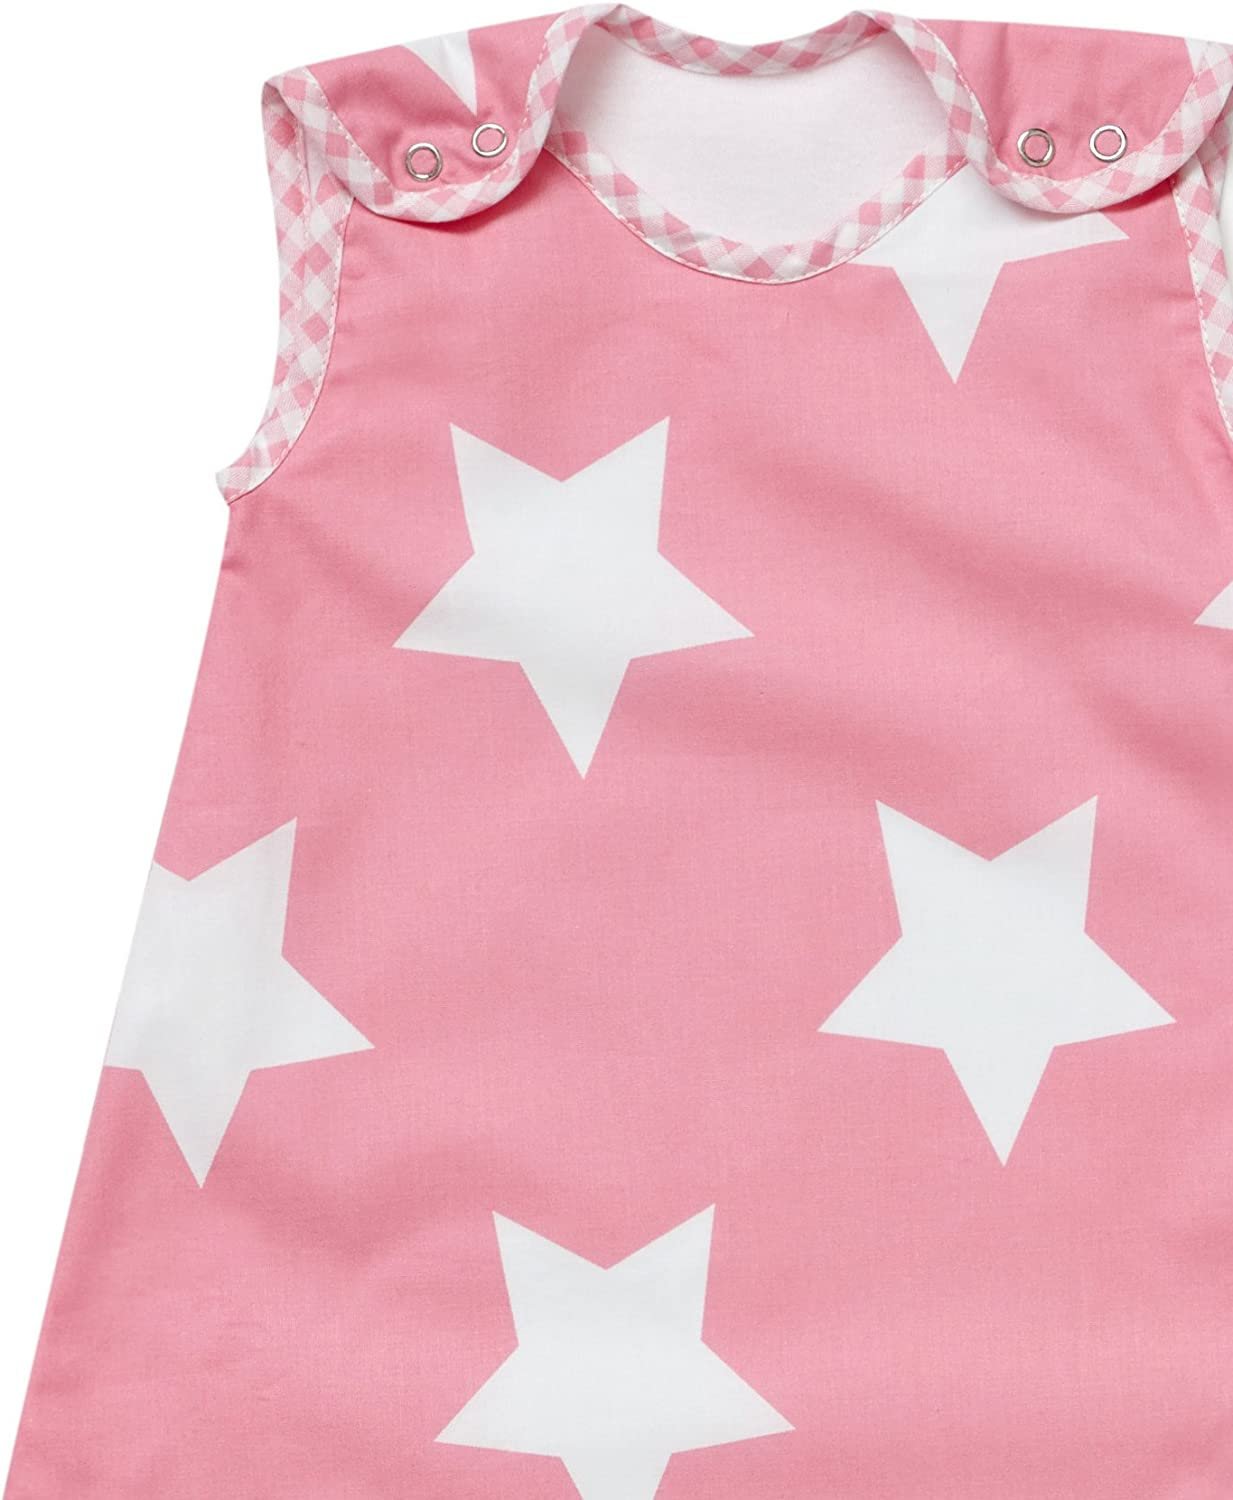 Baby Sleeping Bag Pink with White Stars 2.5 Tog 0-6 Months